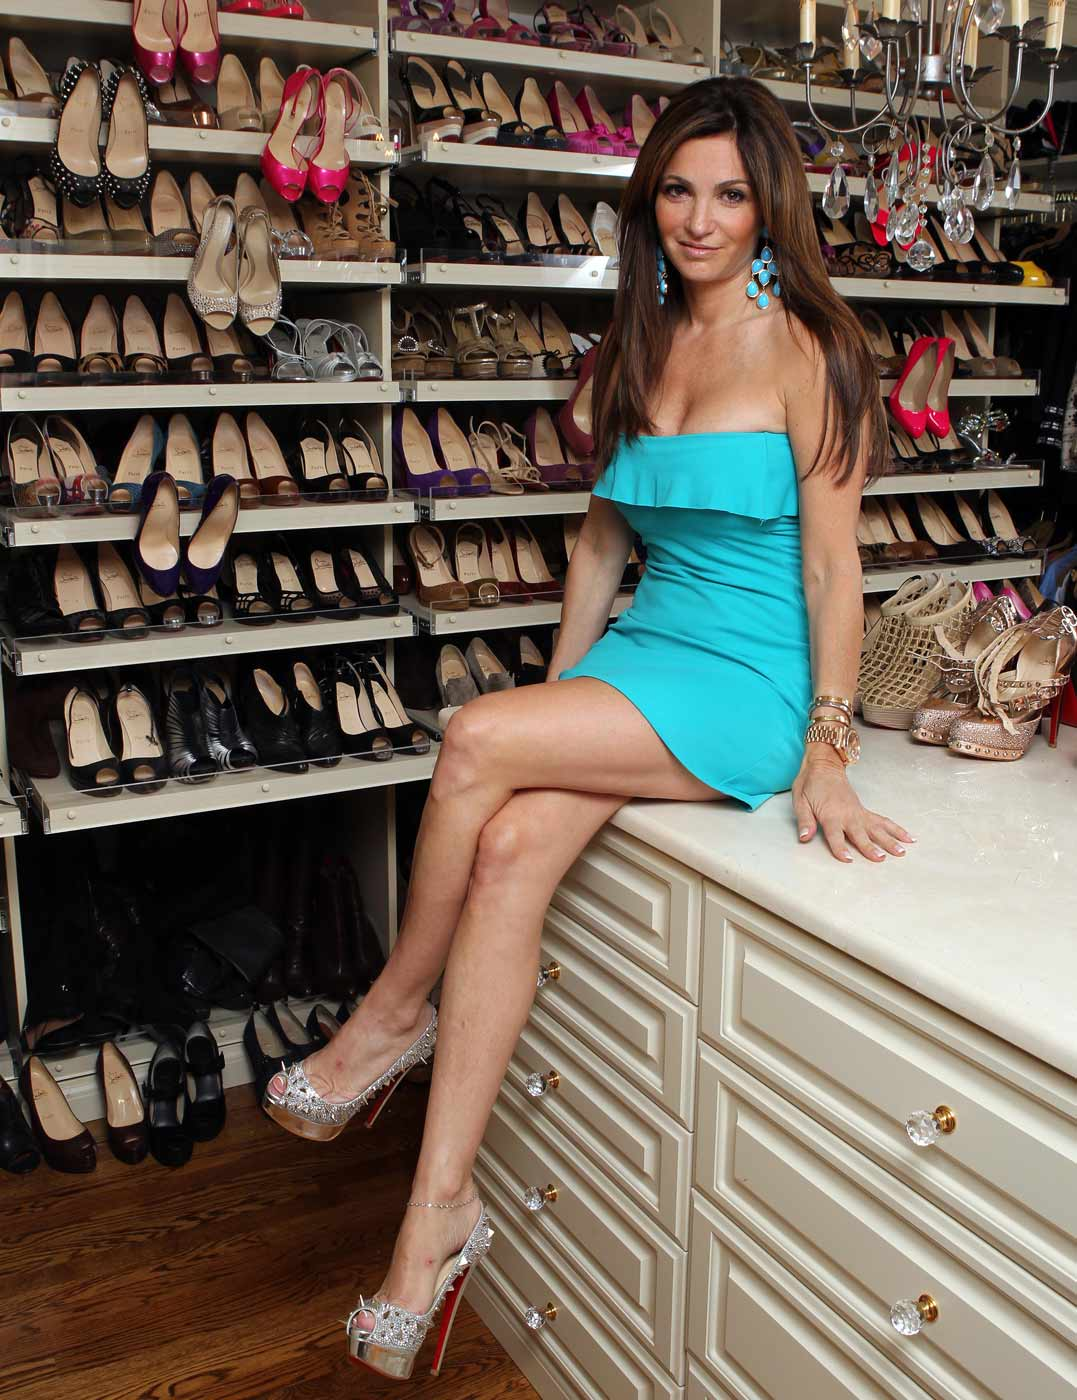 Beth Shak Pennsylvania Home Broken Into, Hacking Horror Continues for Poker's Shoe Empress